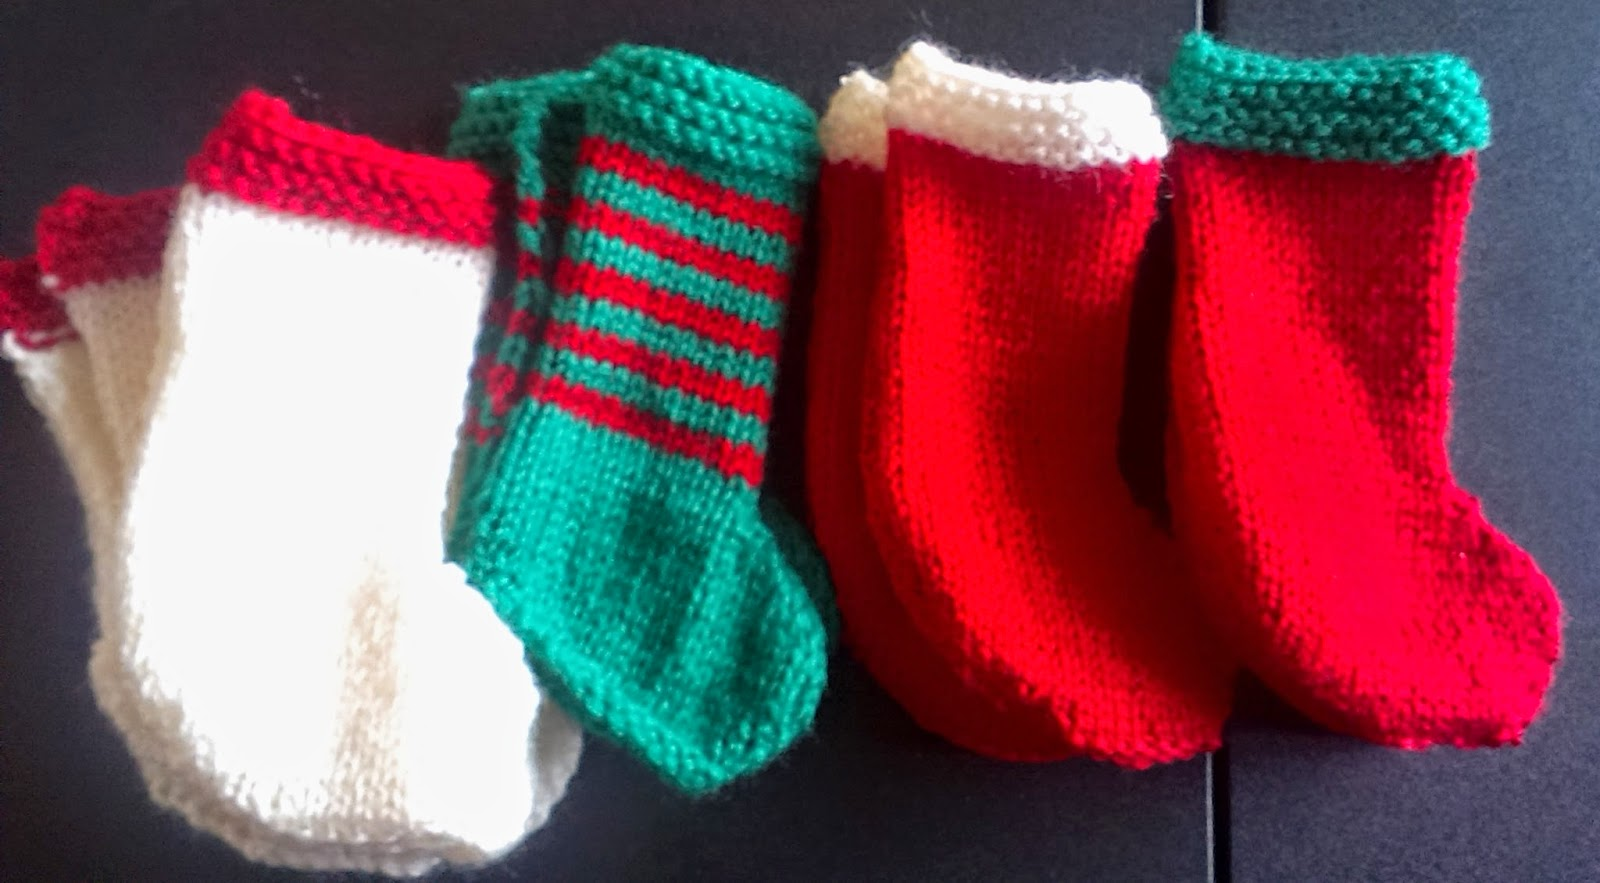 Knitted stockings